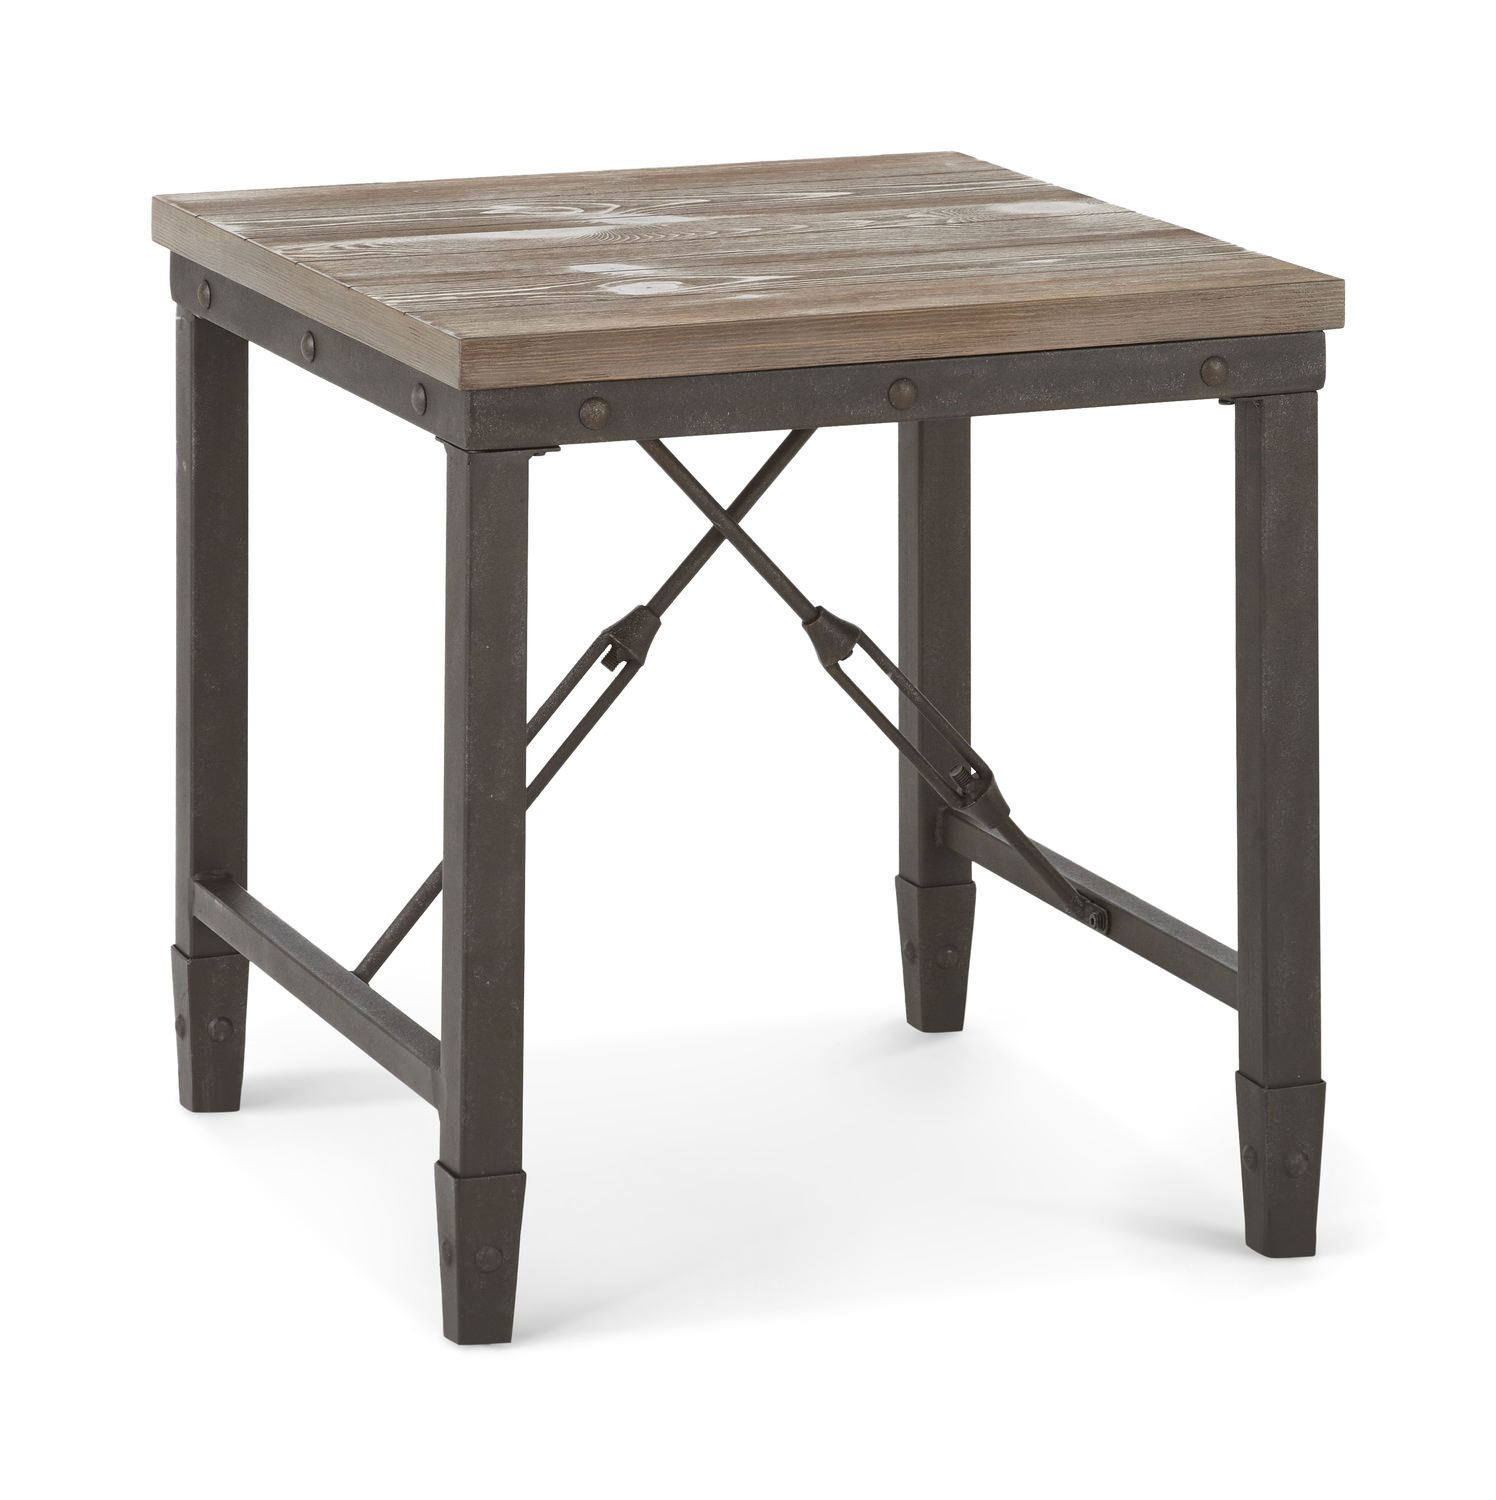 Jersey End Table | HOM Furniture | Furniture Stores In Minneapolis Minnesota  U0026 Midwest